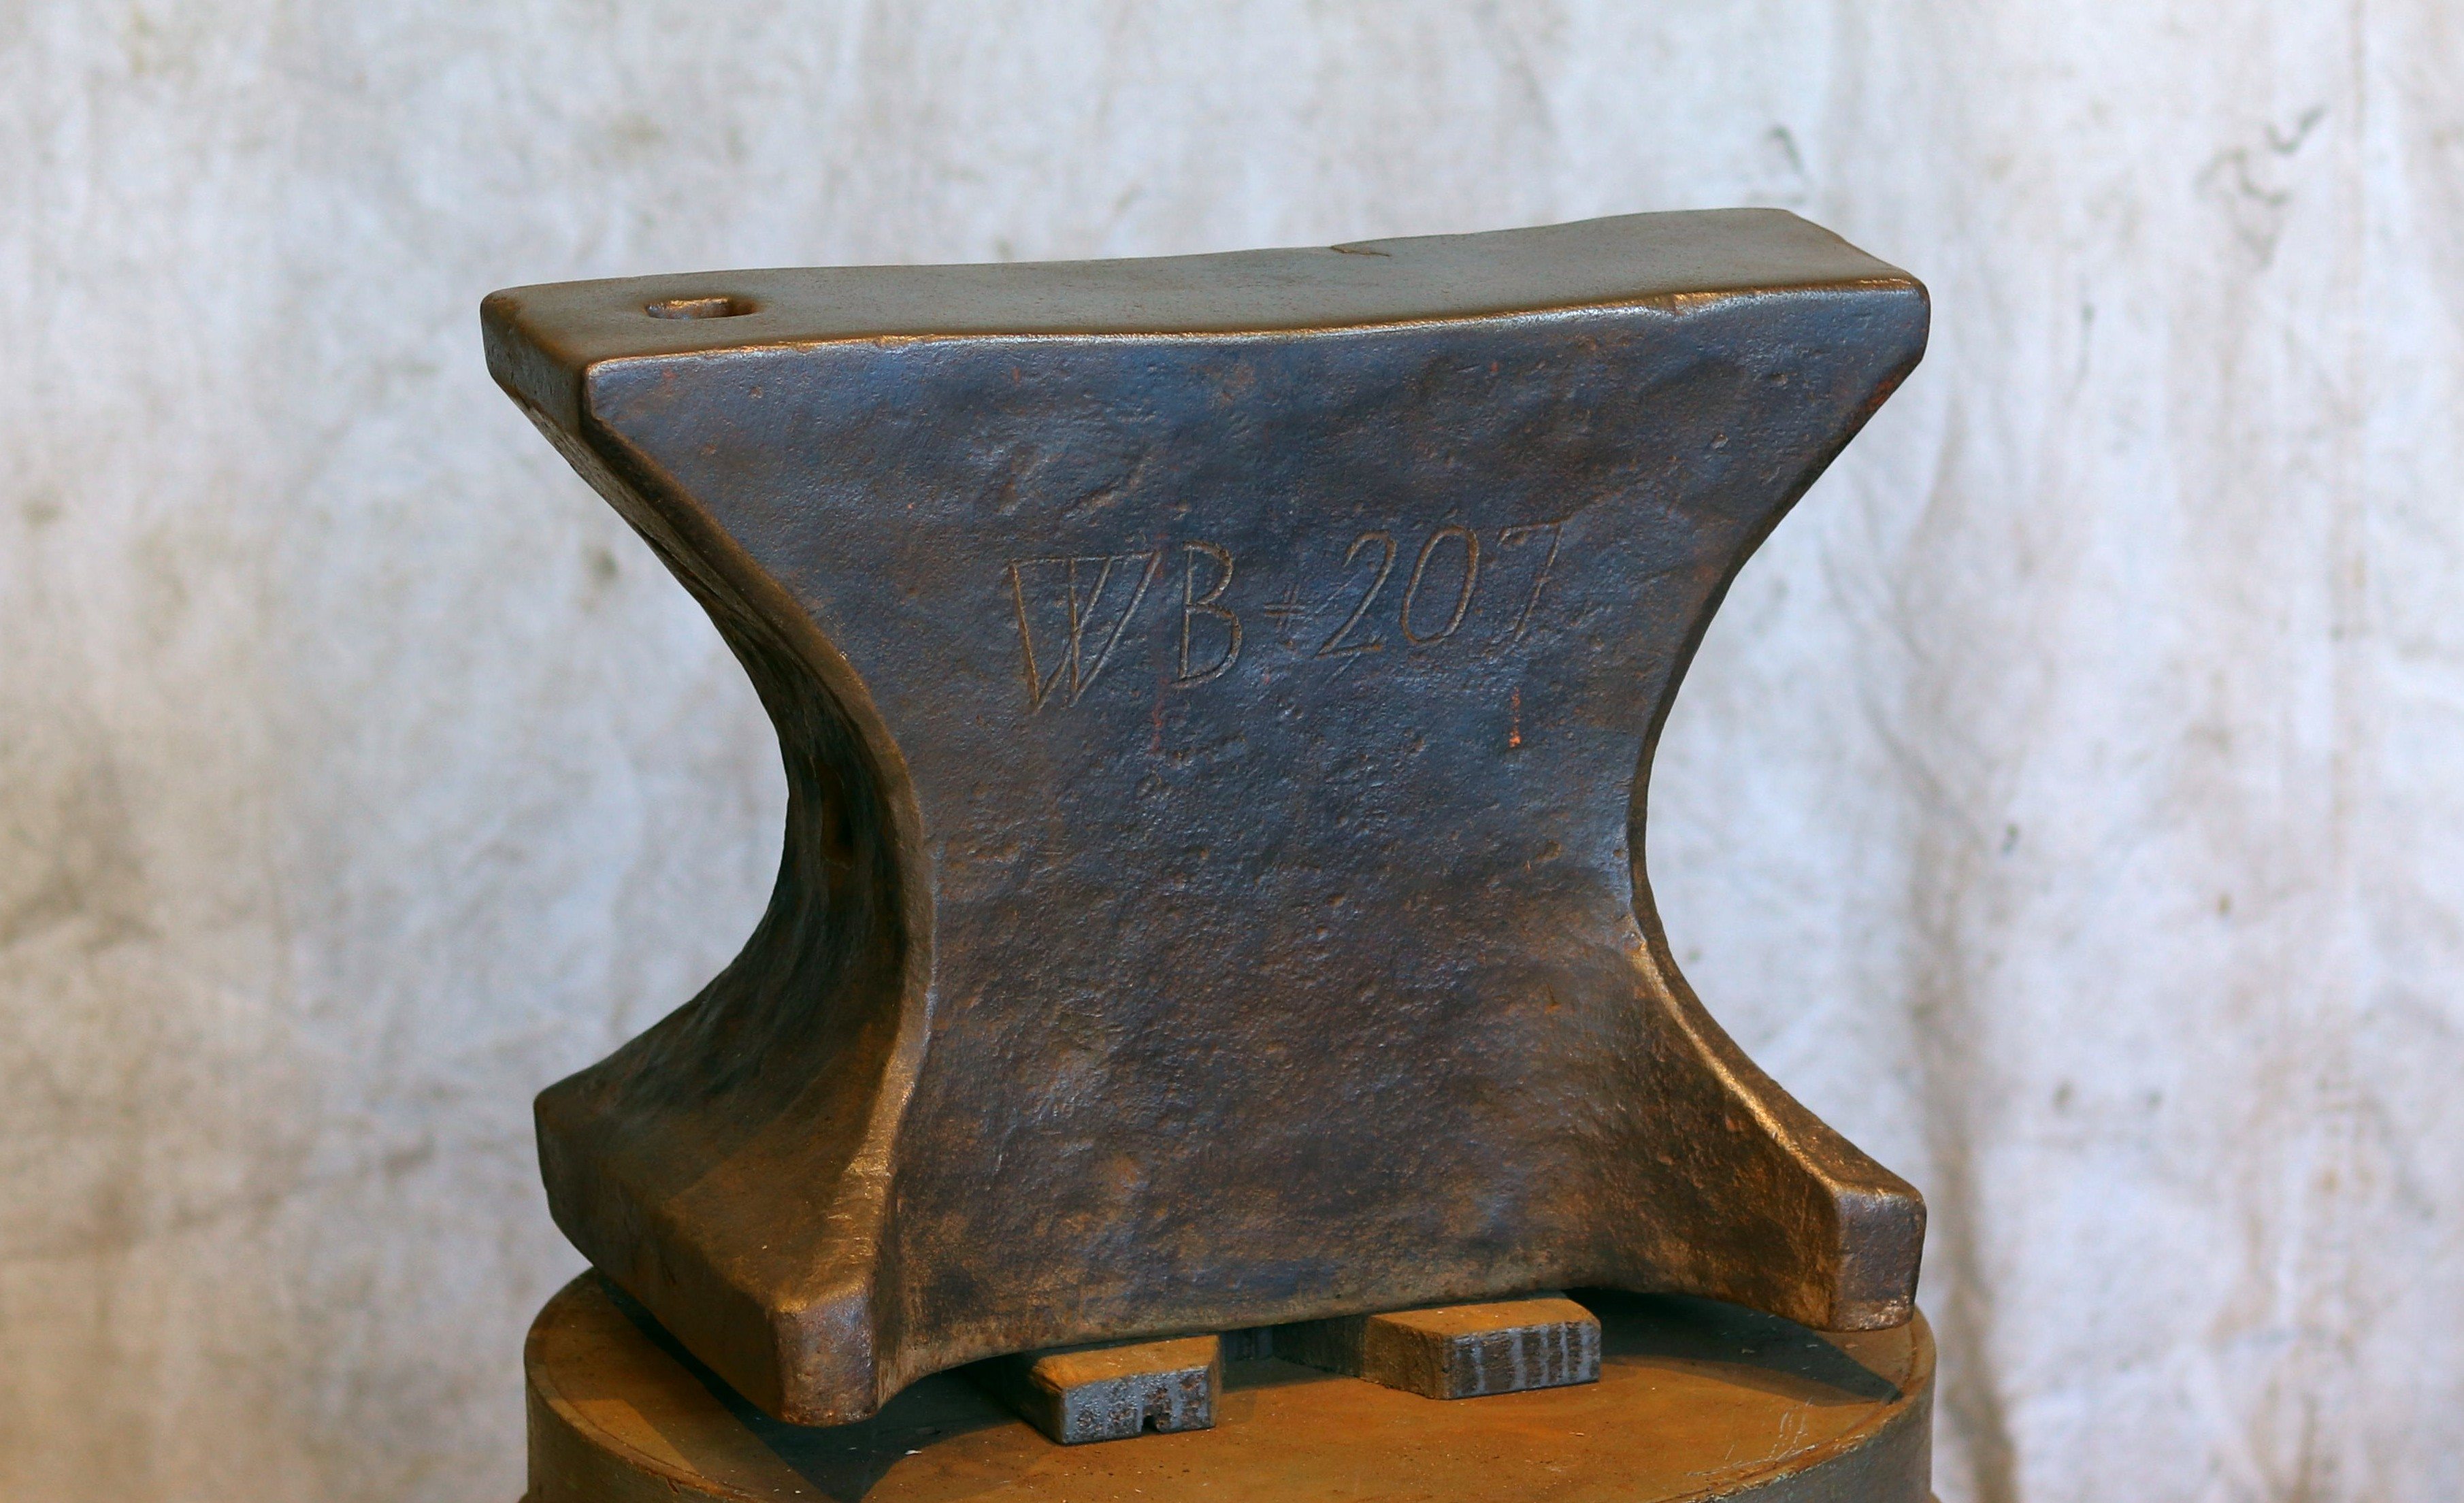 220 lb mid 19th Century German hornless anvil for sale, hand stamped makers mark and weight, good ring and rebound.